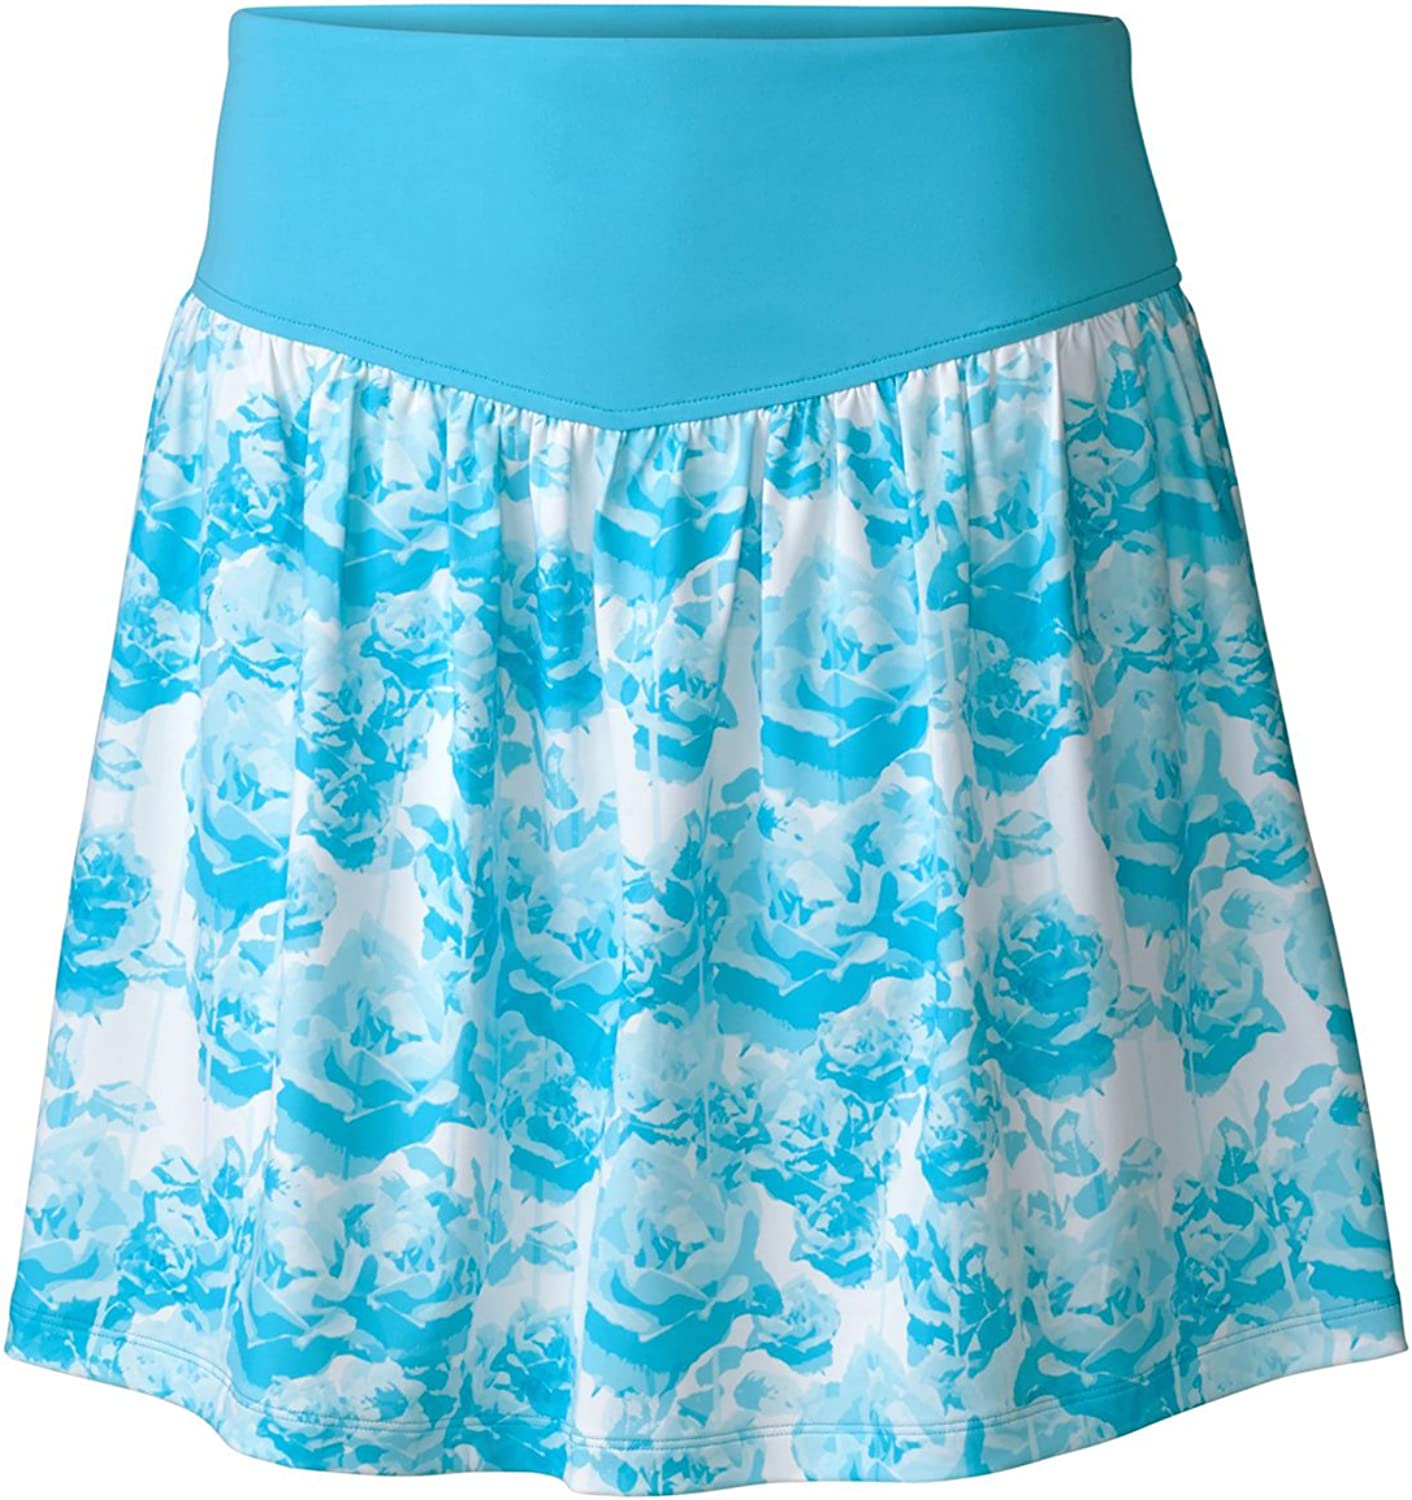 Cutter and Buck Annika Isobel Knit Print Skort (Medium)